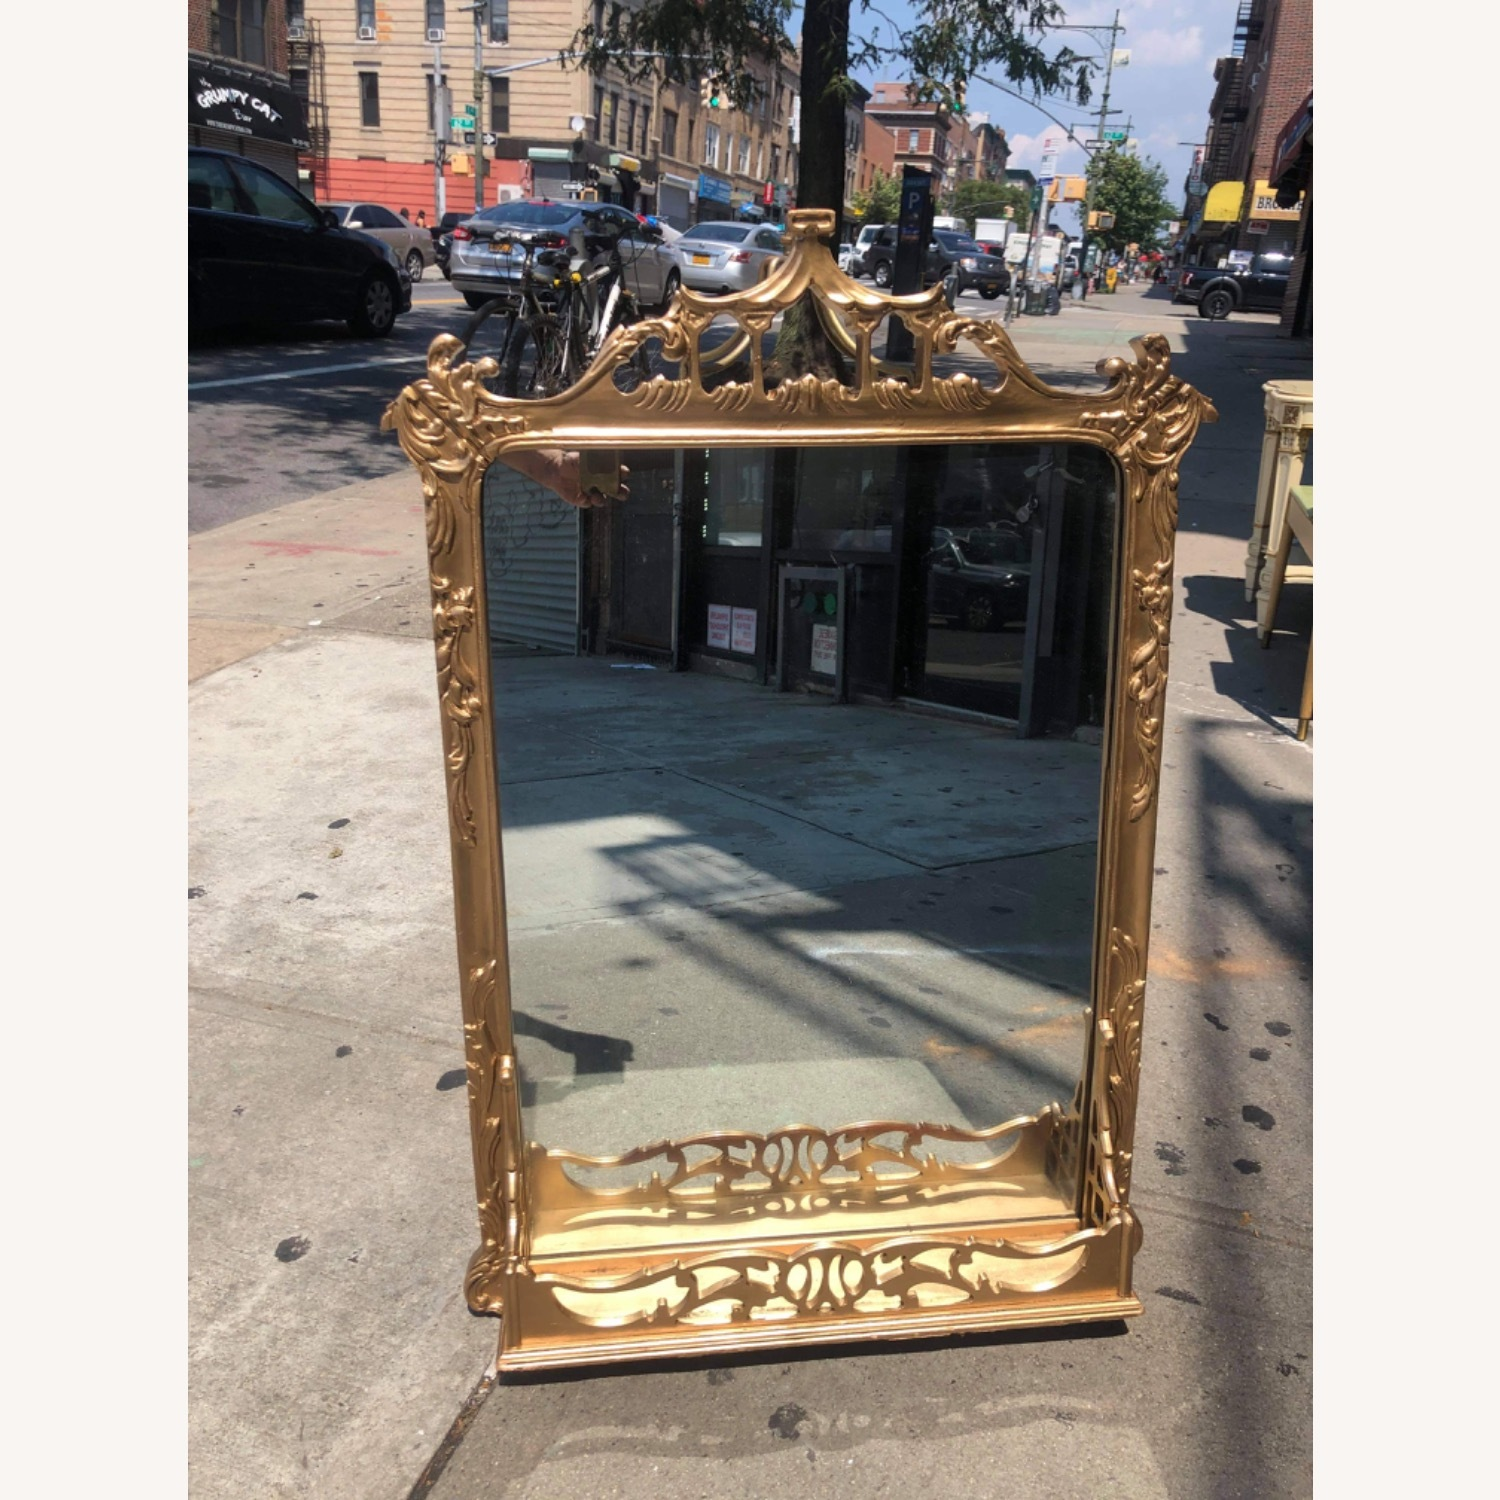 Antique 1900s Gold Painted Wooden Fram ed Mirror - image-2